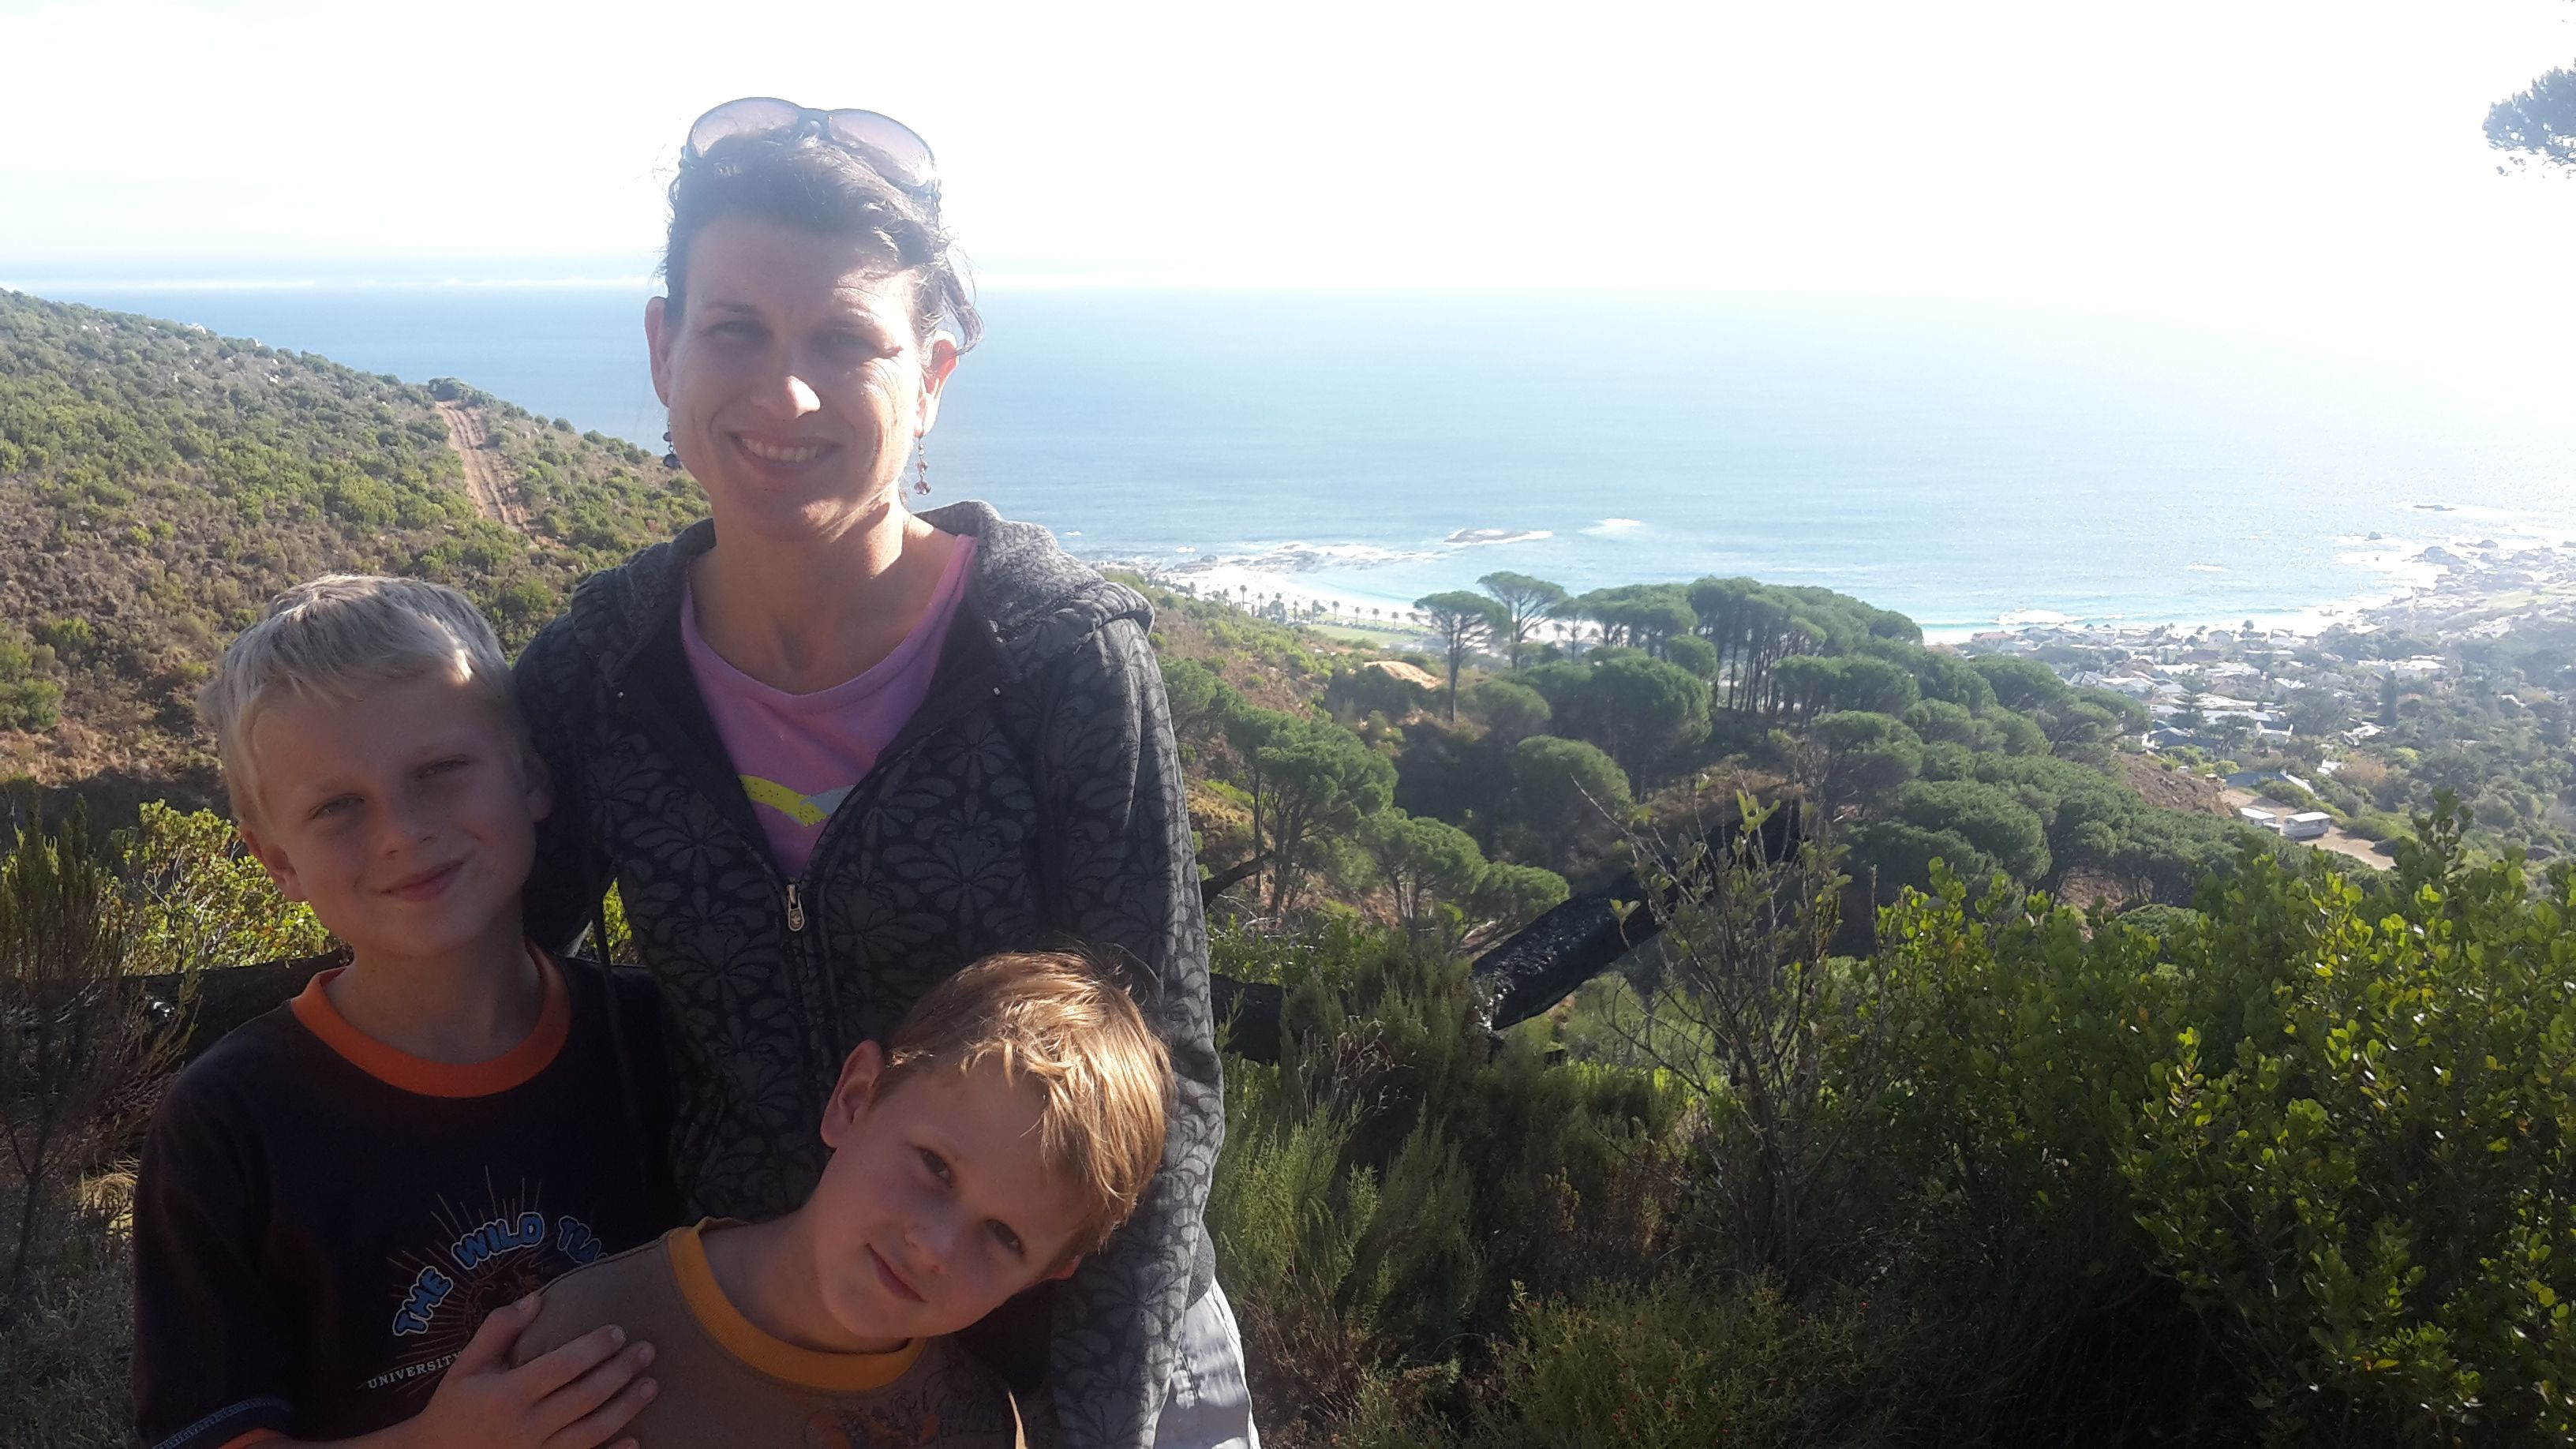 Sandra, Ross and Callum Jenman along the Pipe Trail with a beautiful view of Cape Town